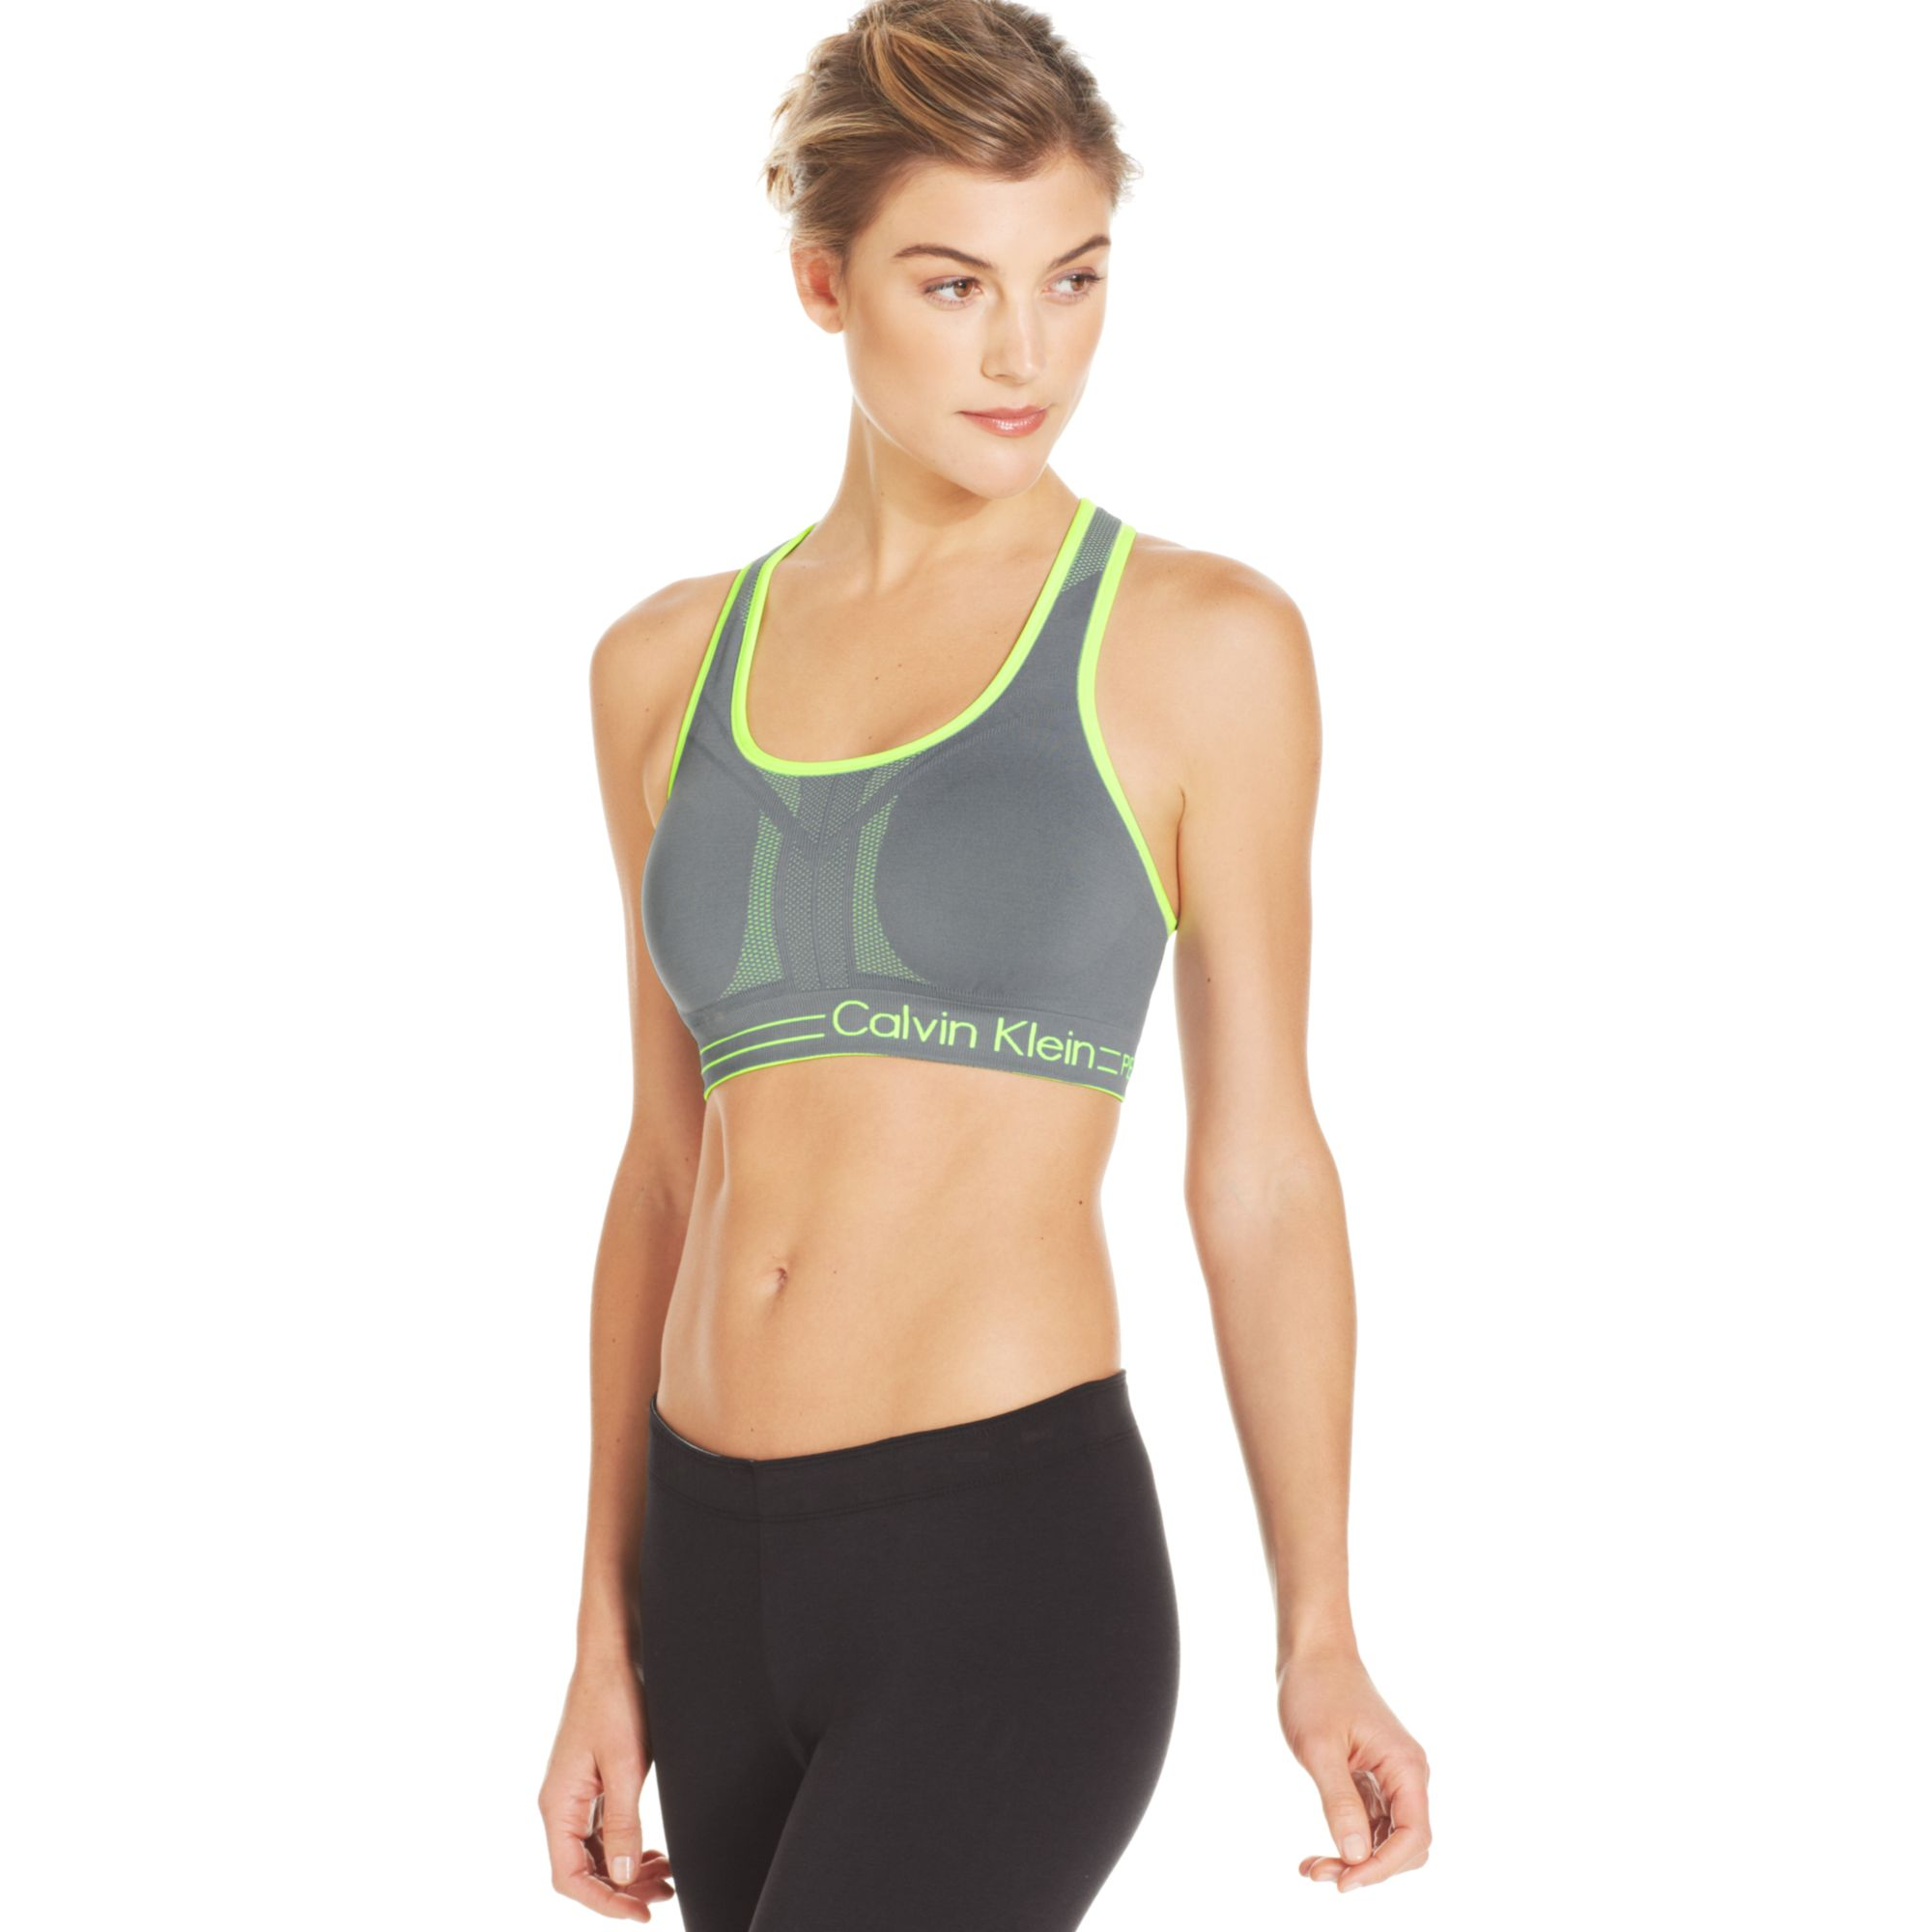 8043cc4d9a876 Lyst - Calvin Klein Performance Reversible Racerback Sports Bra in ...